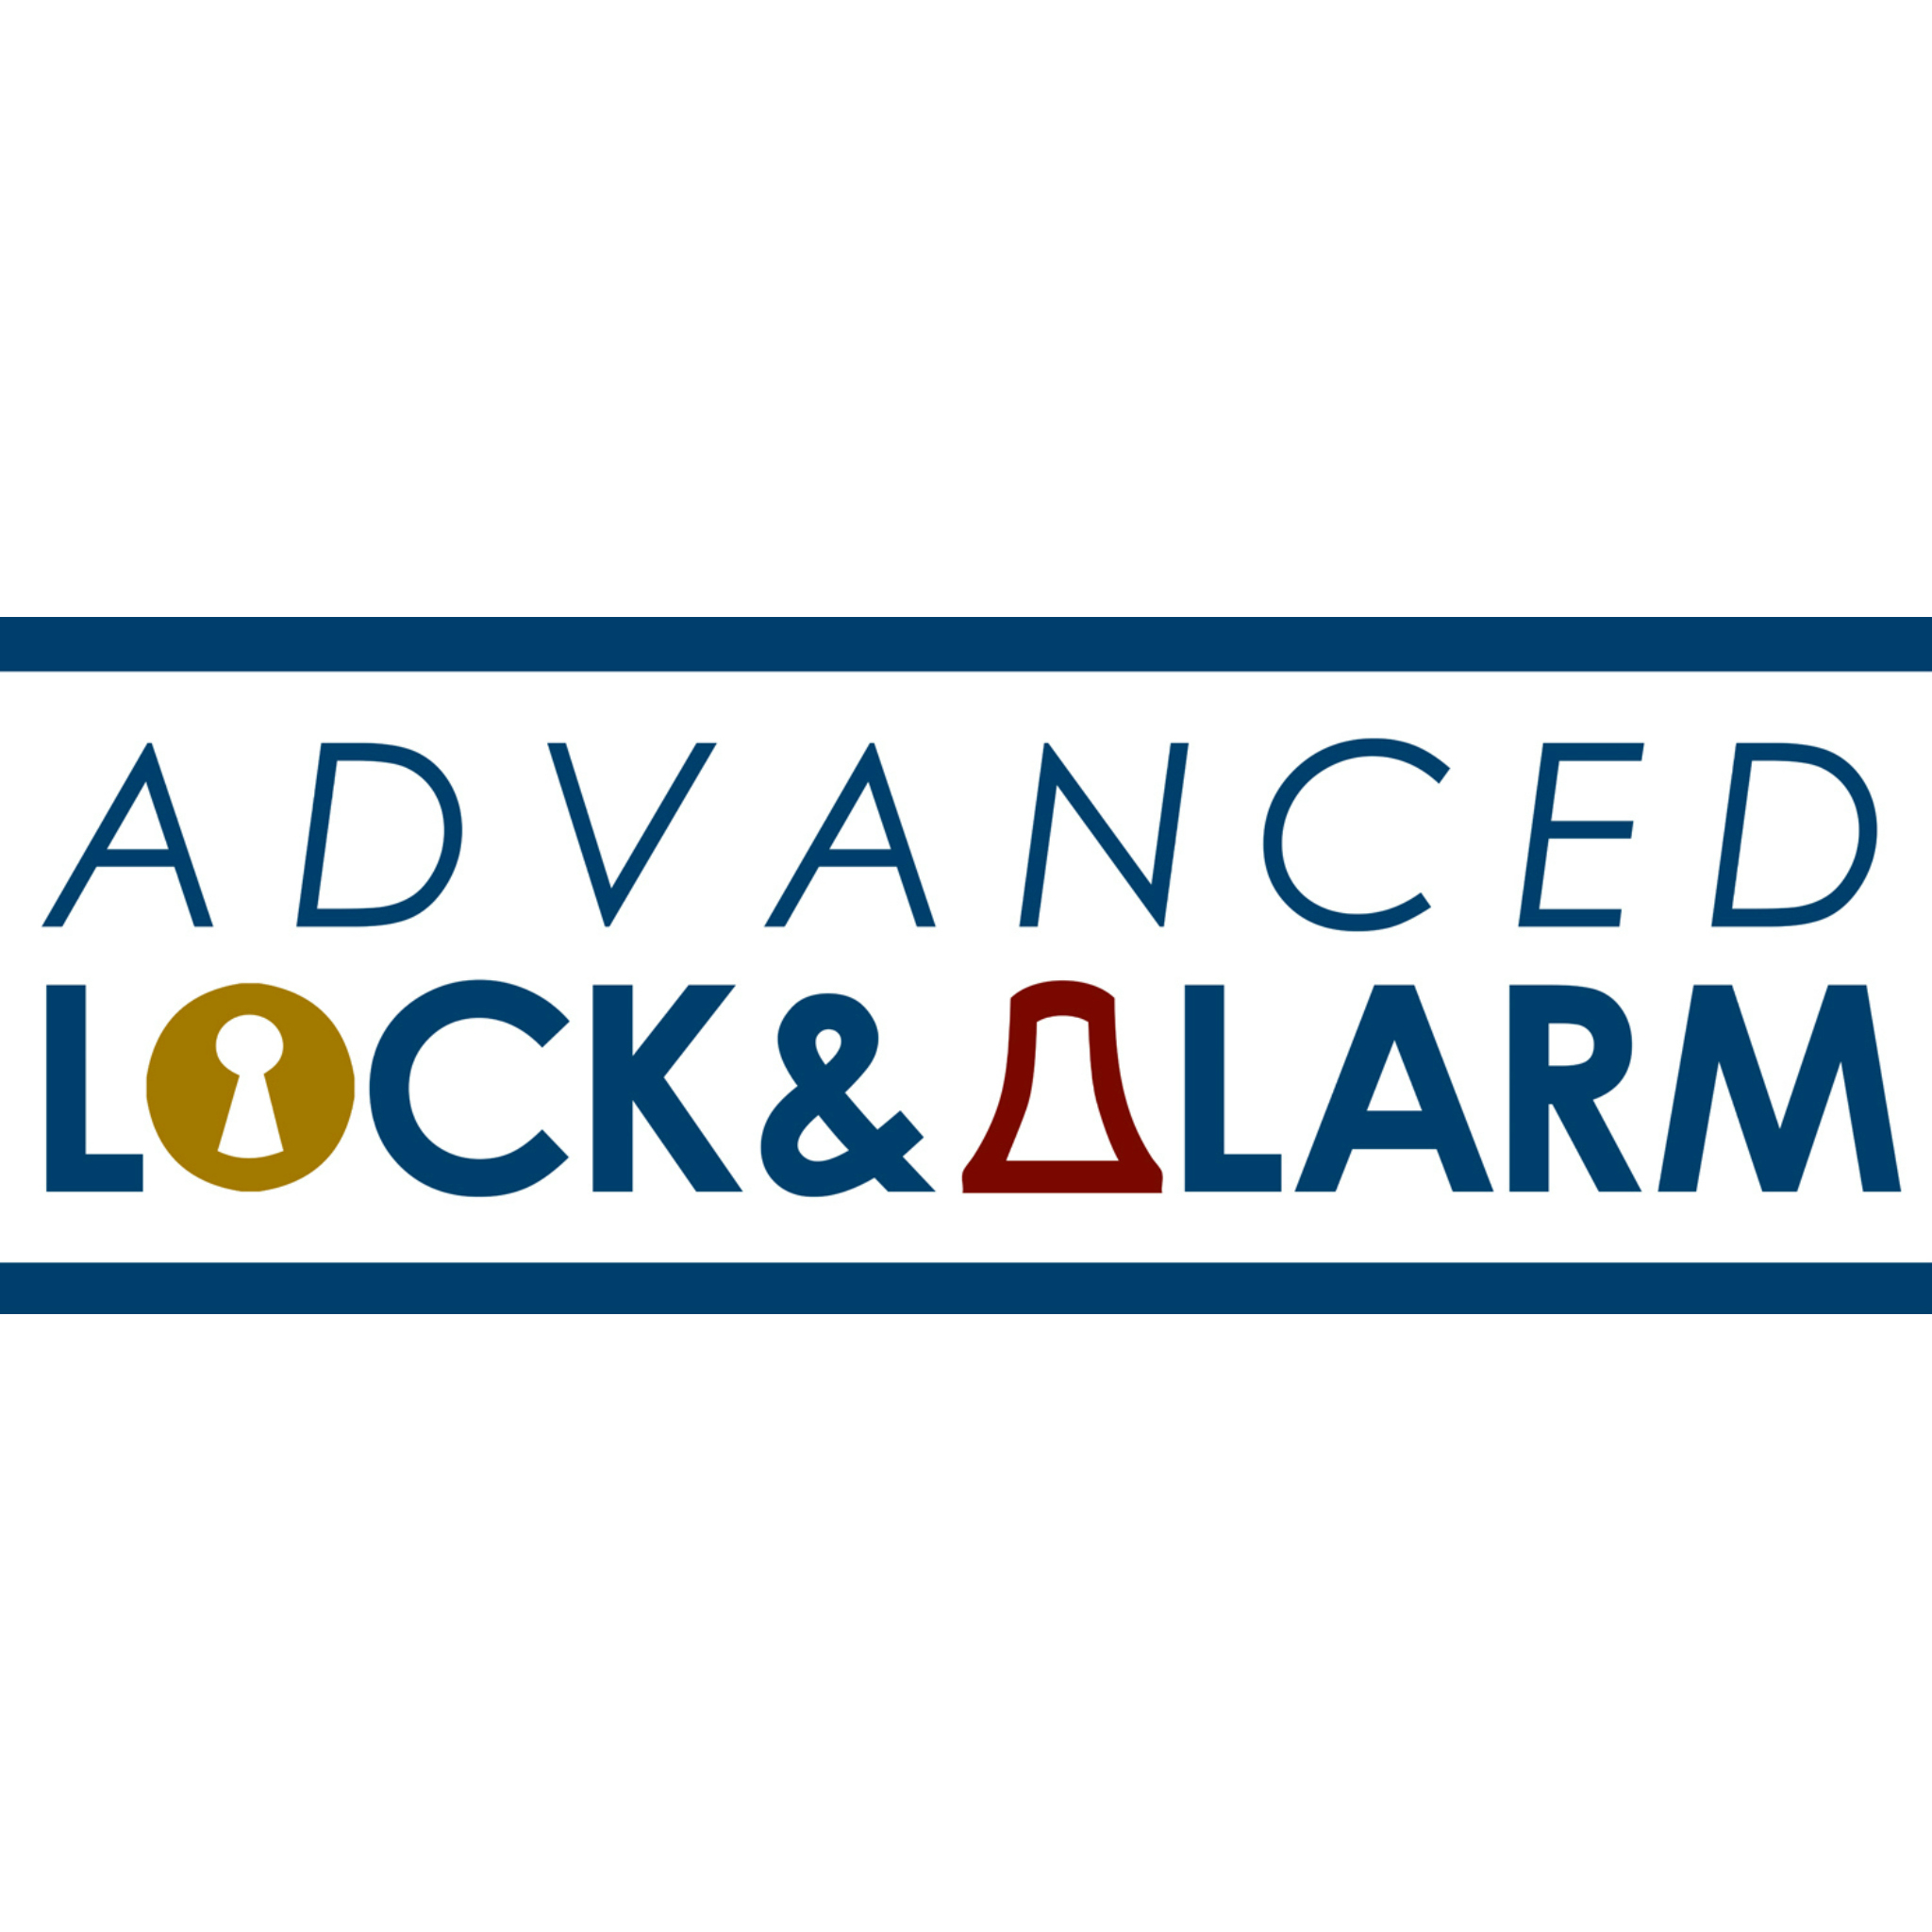 Advanced Lock & Alarm